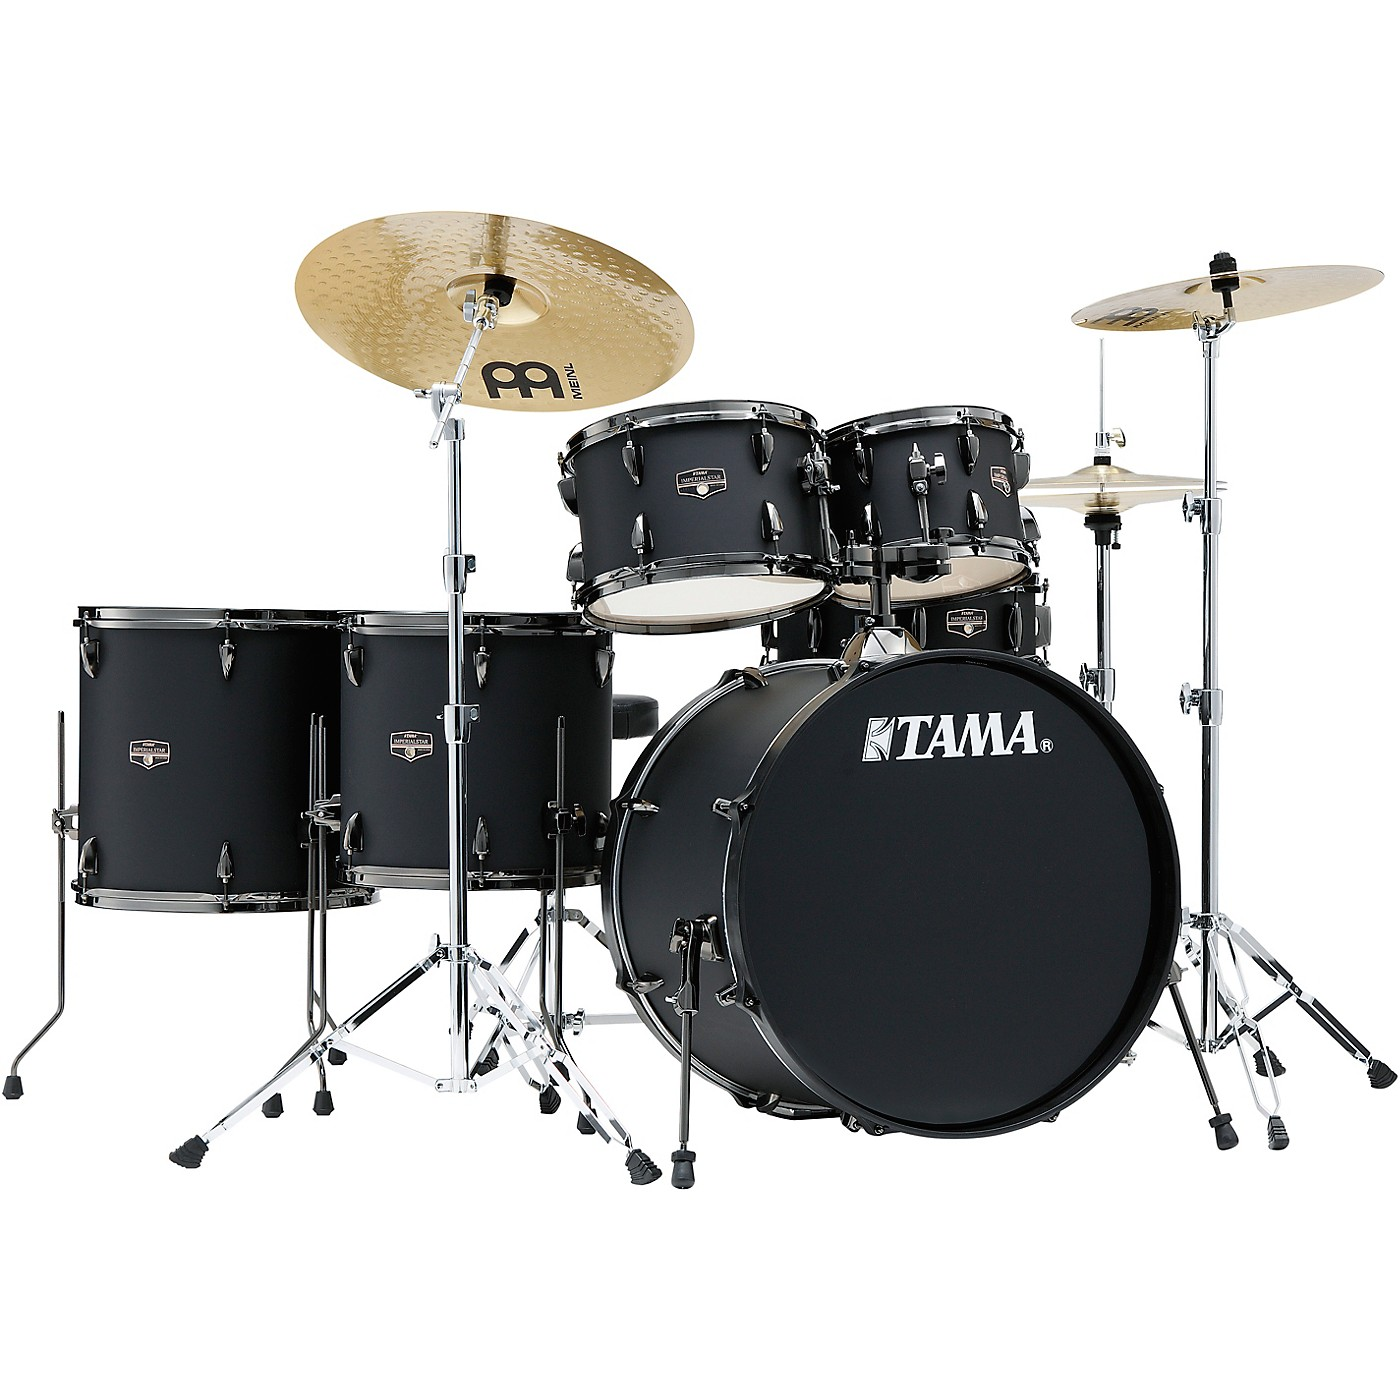 TAMA Imperialstar 6-Piece Complete Drum Set with Meinl HCS Cymbals and 22 in. Bass Drum thumbnail